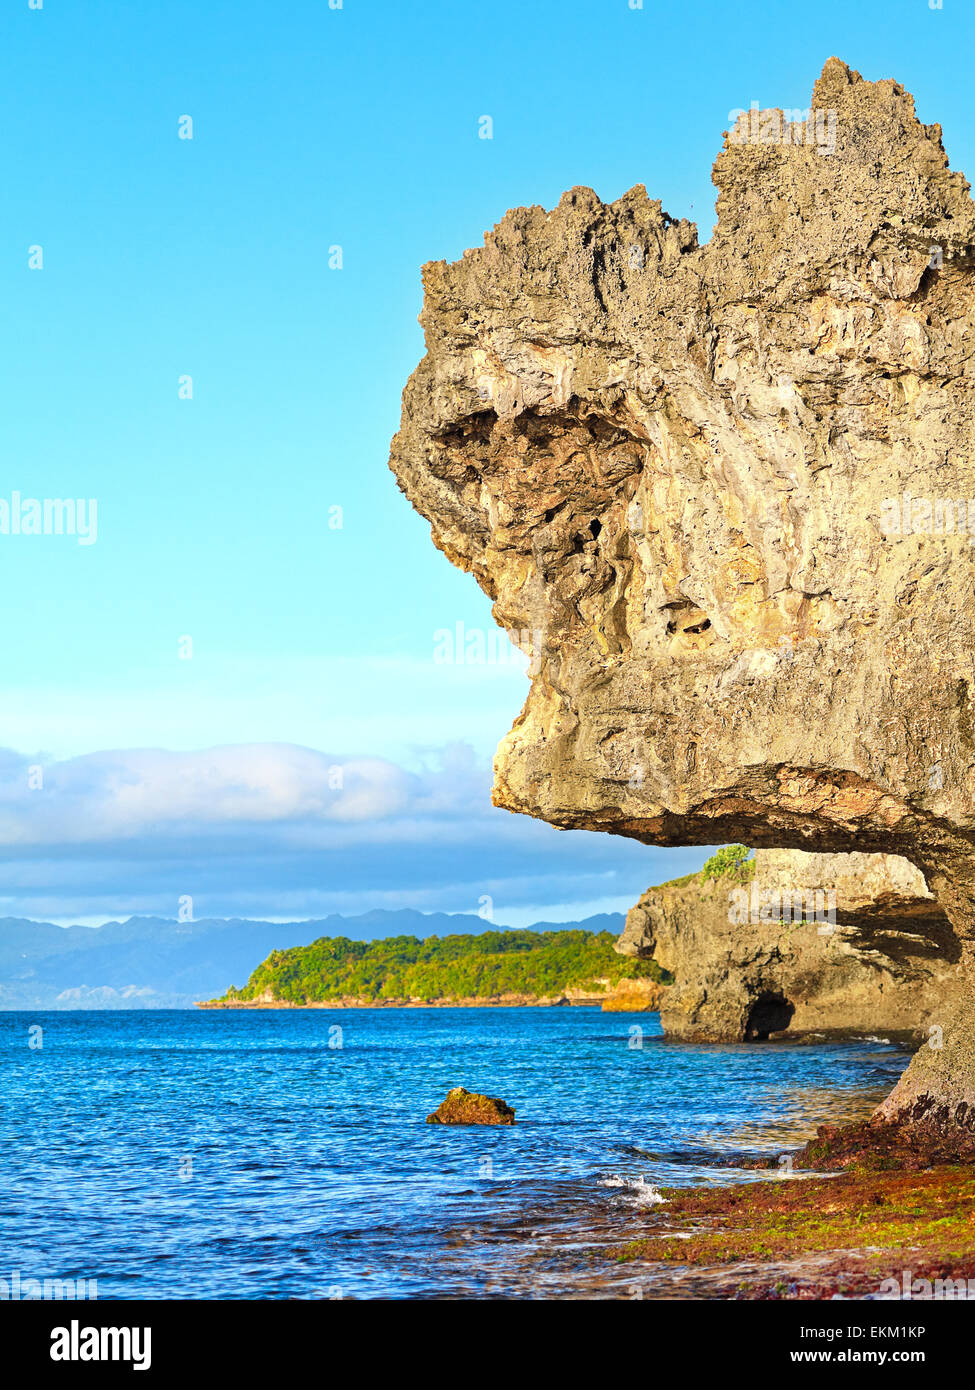 Beautiful seascape. Stone on the foreground. Philippines - Stock Image